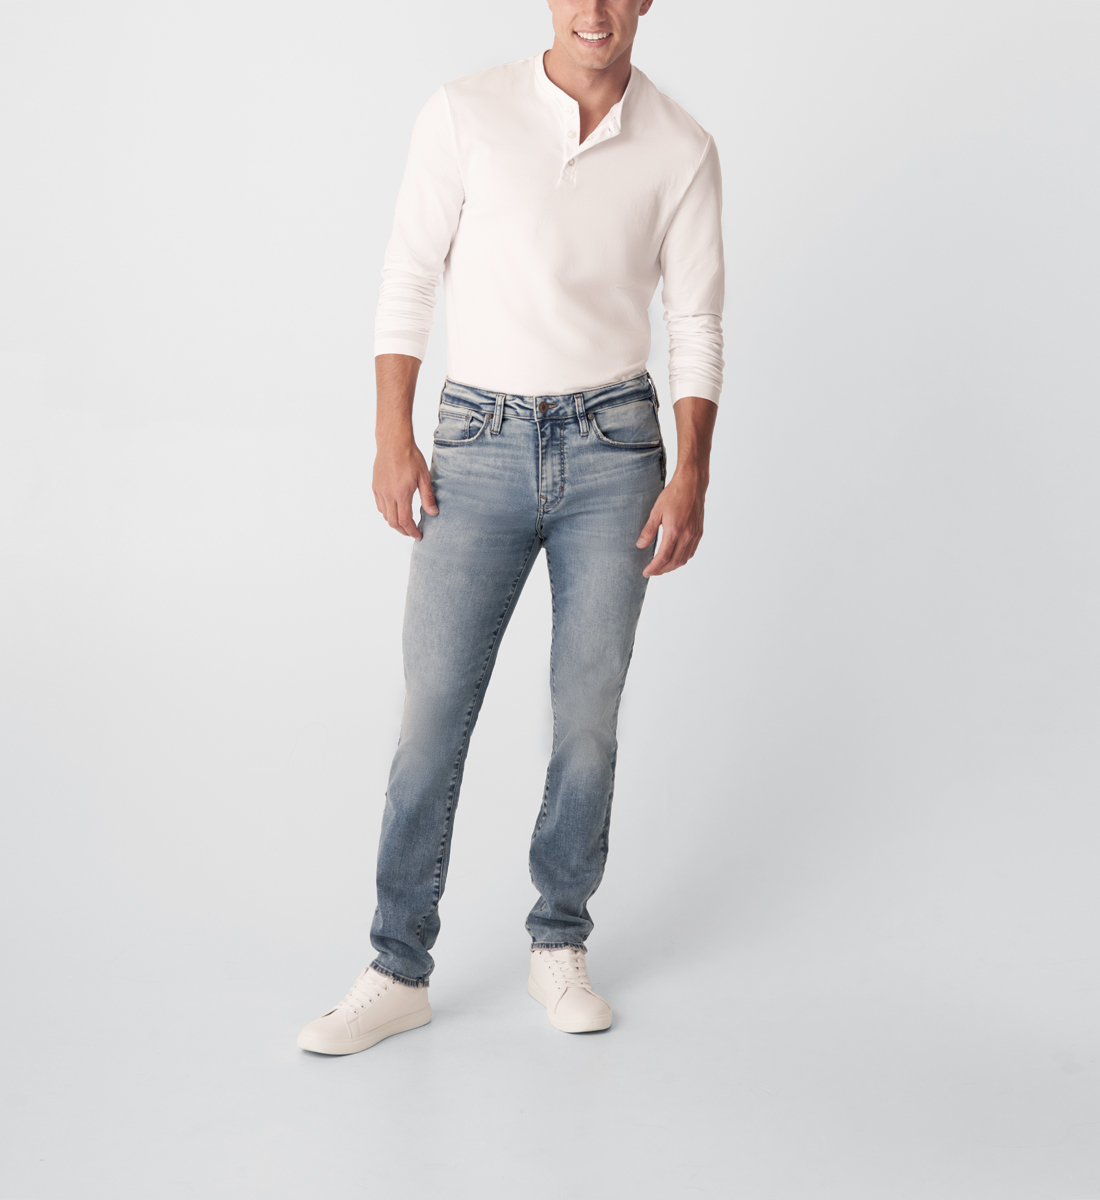 Kenaston Slim Fit Slim Leg Jeans Front